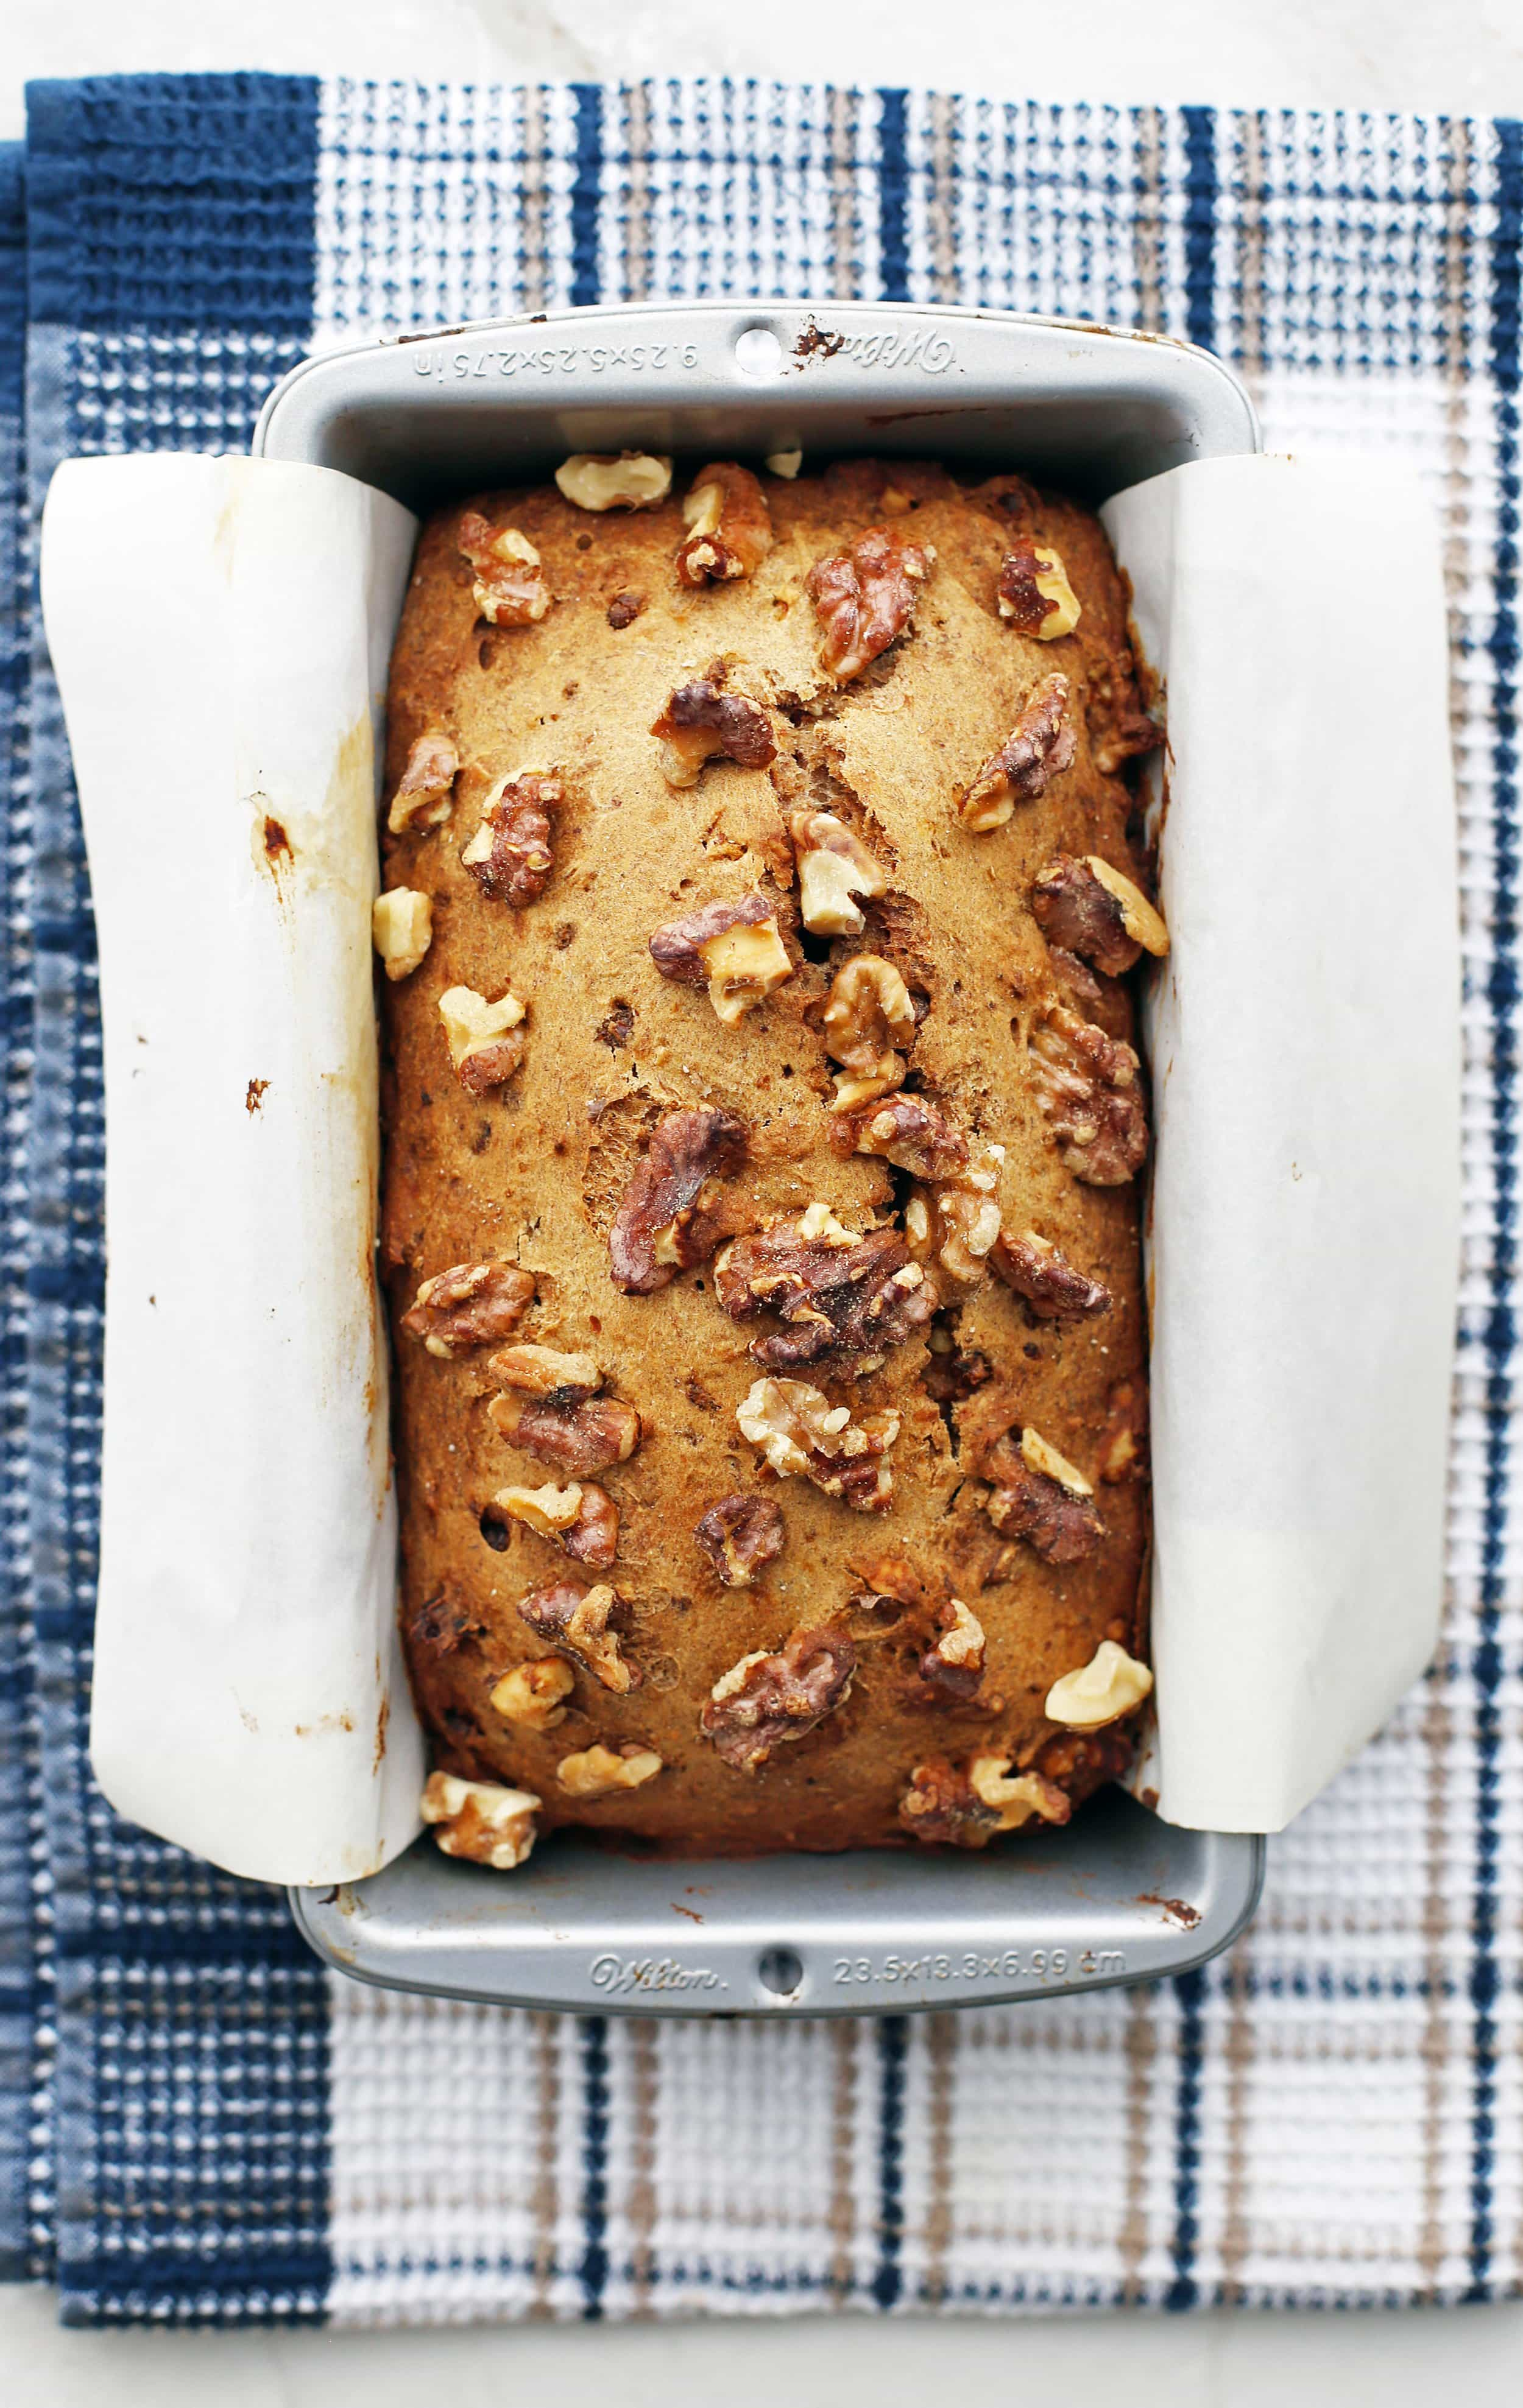 Freshly baked Date Banana Nut Bread in a parchment paper-lined loaf pan.